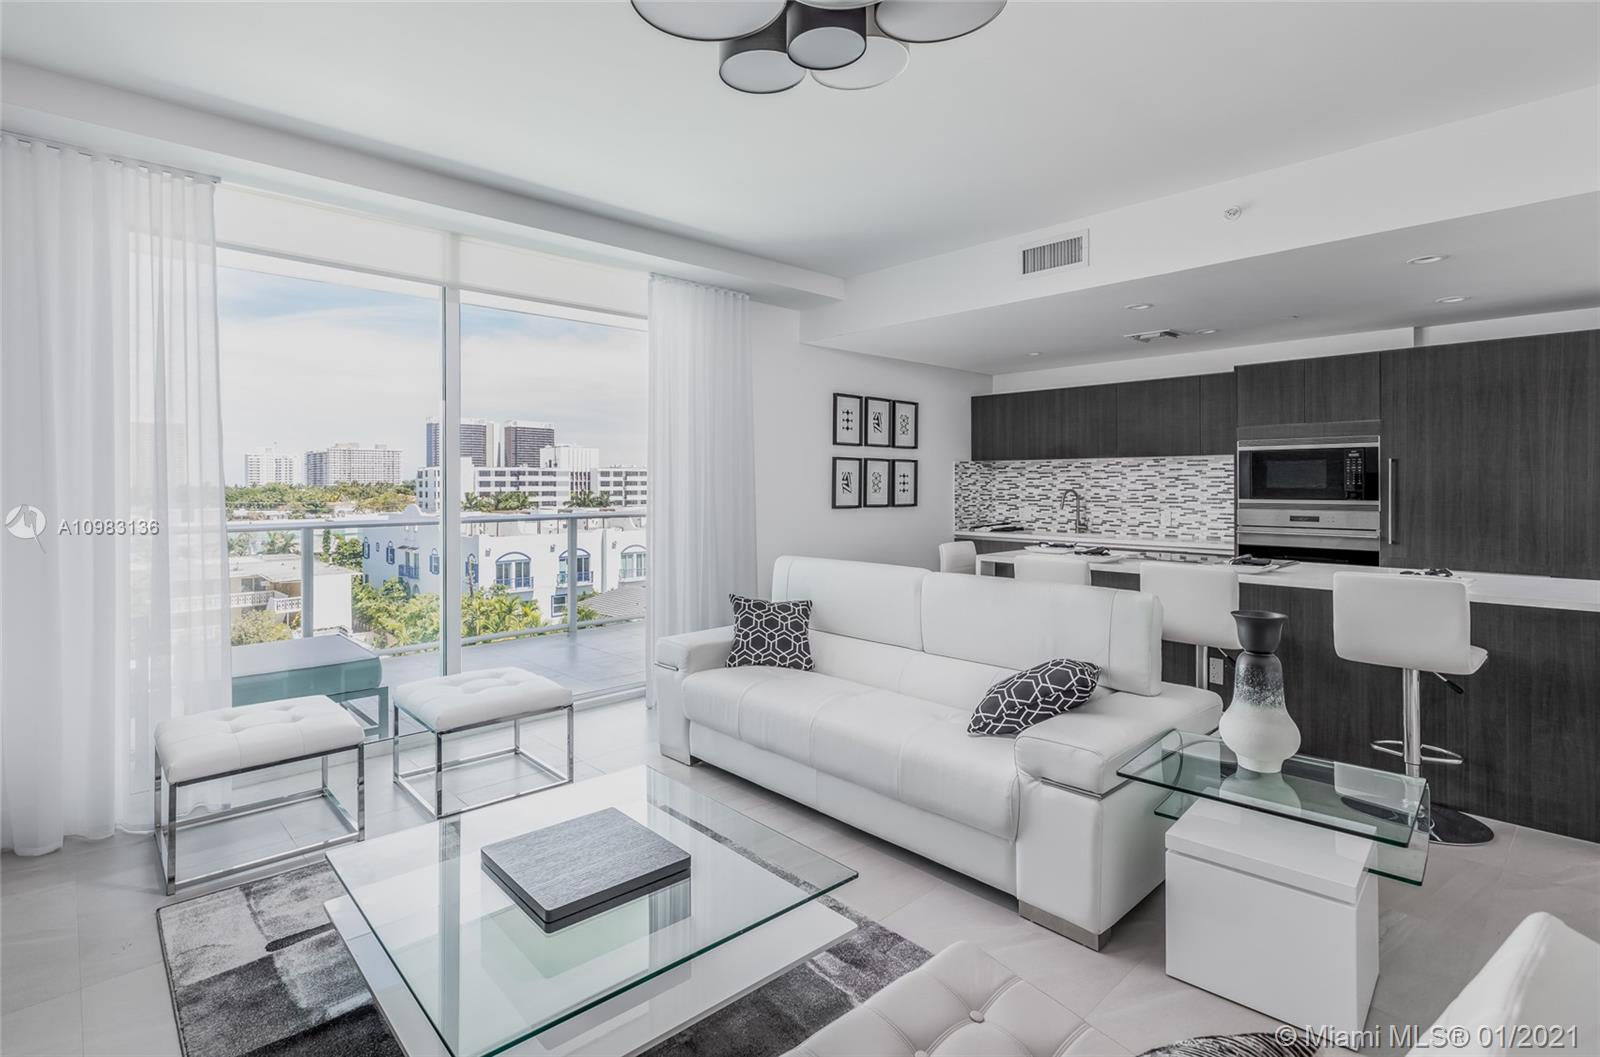 Fantastic opportunity to live in the prestigious neighborhood of Bay Harbor Islands, FL. Brand new construction comprises seven floors and 30 units that feature an open kitchen with Sub-Zero appliances, refrigerator baths with exotic stone & walk-in closets. Le Jardin Residences offers excellent amenities - 2 parking spaces, gym, and rooftop pool, rooftop terrace, barbecue area, concierge. A short distance from Le Jardin Residences, you'll find many restaurants, coffee shops, parks, and a luxurious Bay Harbour shopping center. Public schools in Bay Harbor Islands are above average. A+ School Ruth K. Broad Bay Harbor K-8 Center. Unit occupied until March 14th